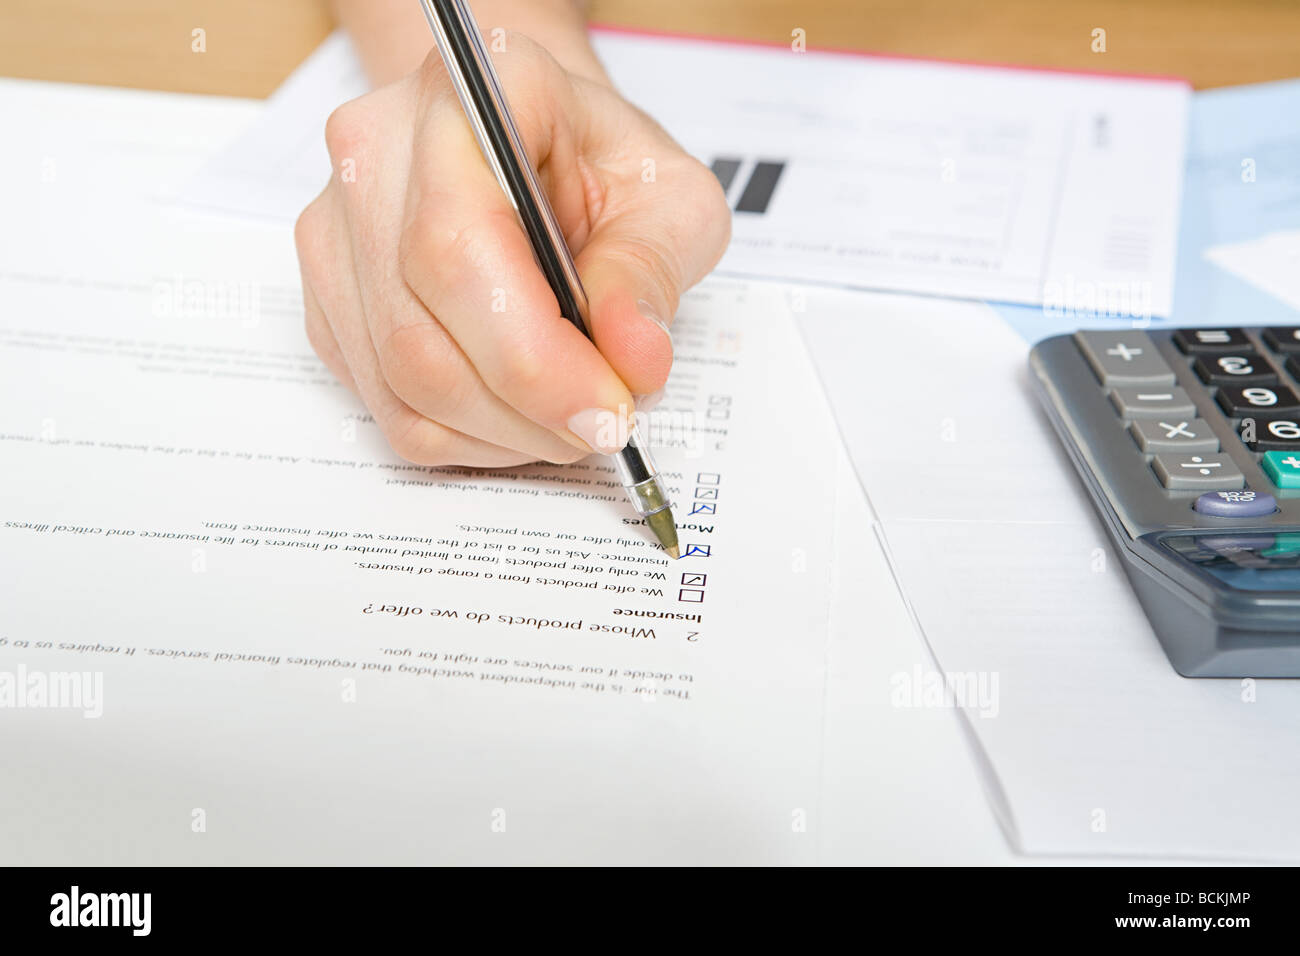 Person filling in form - Stock Image